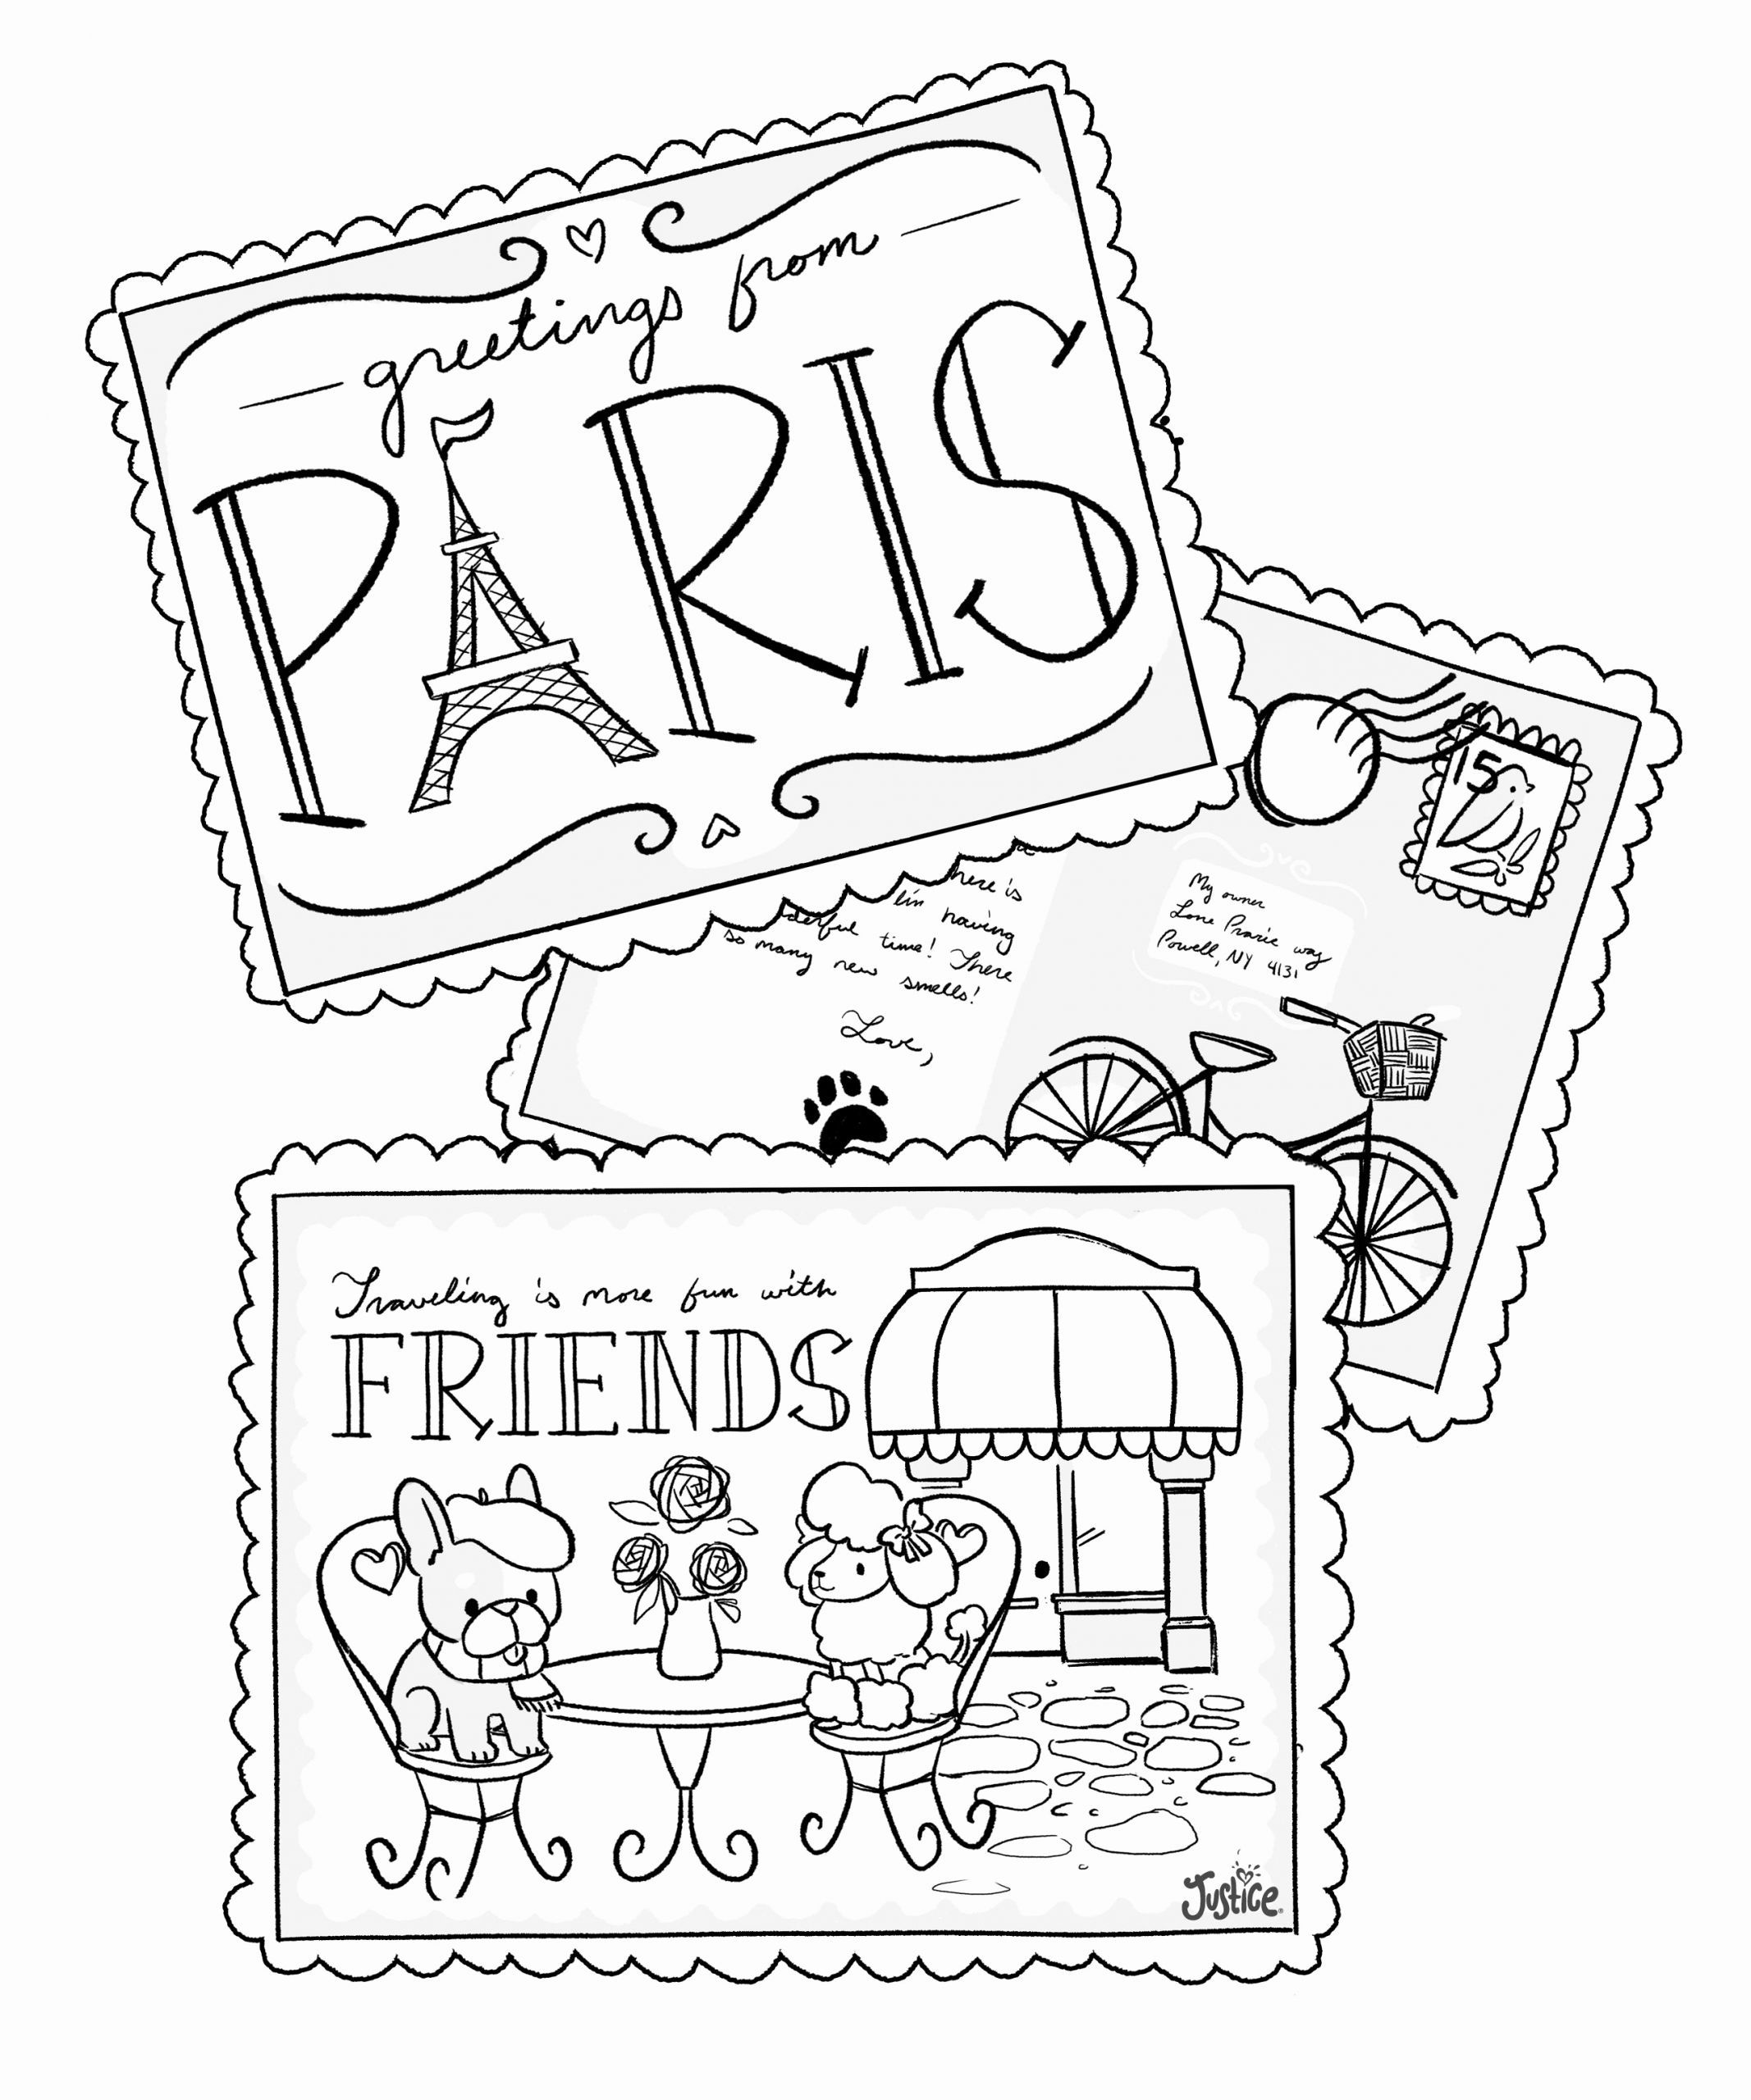 Spring Break Coloring Sheets In 2020 Coloring Pages Spring